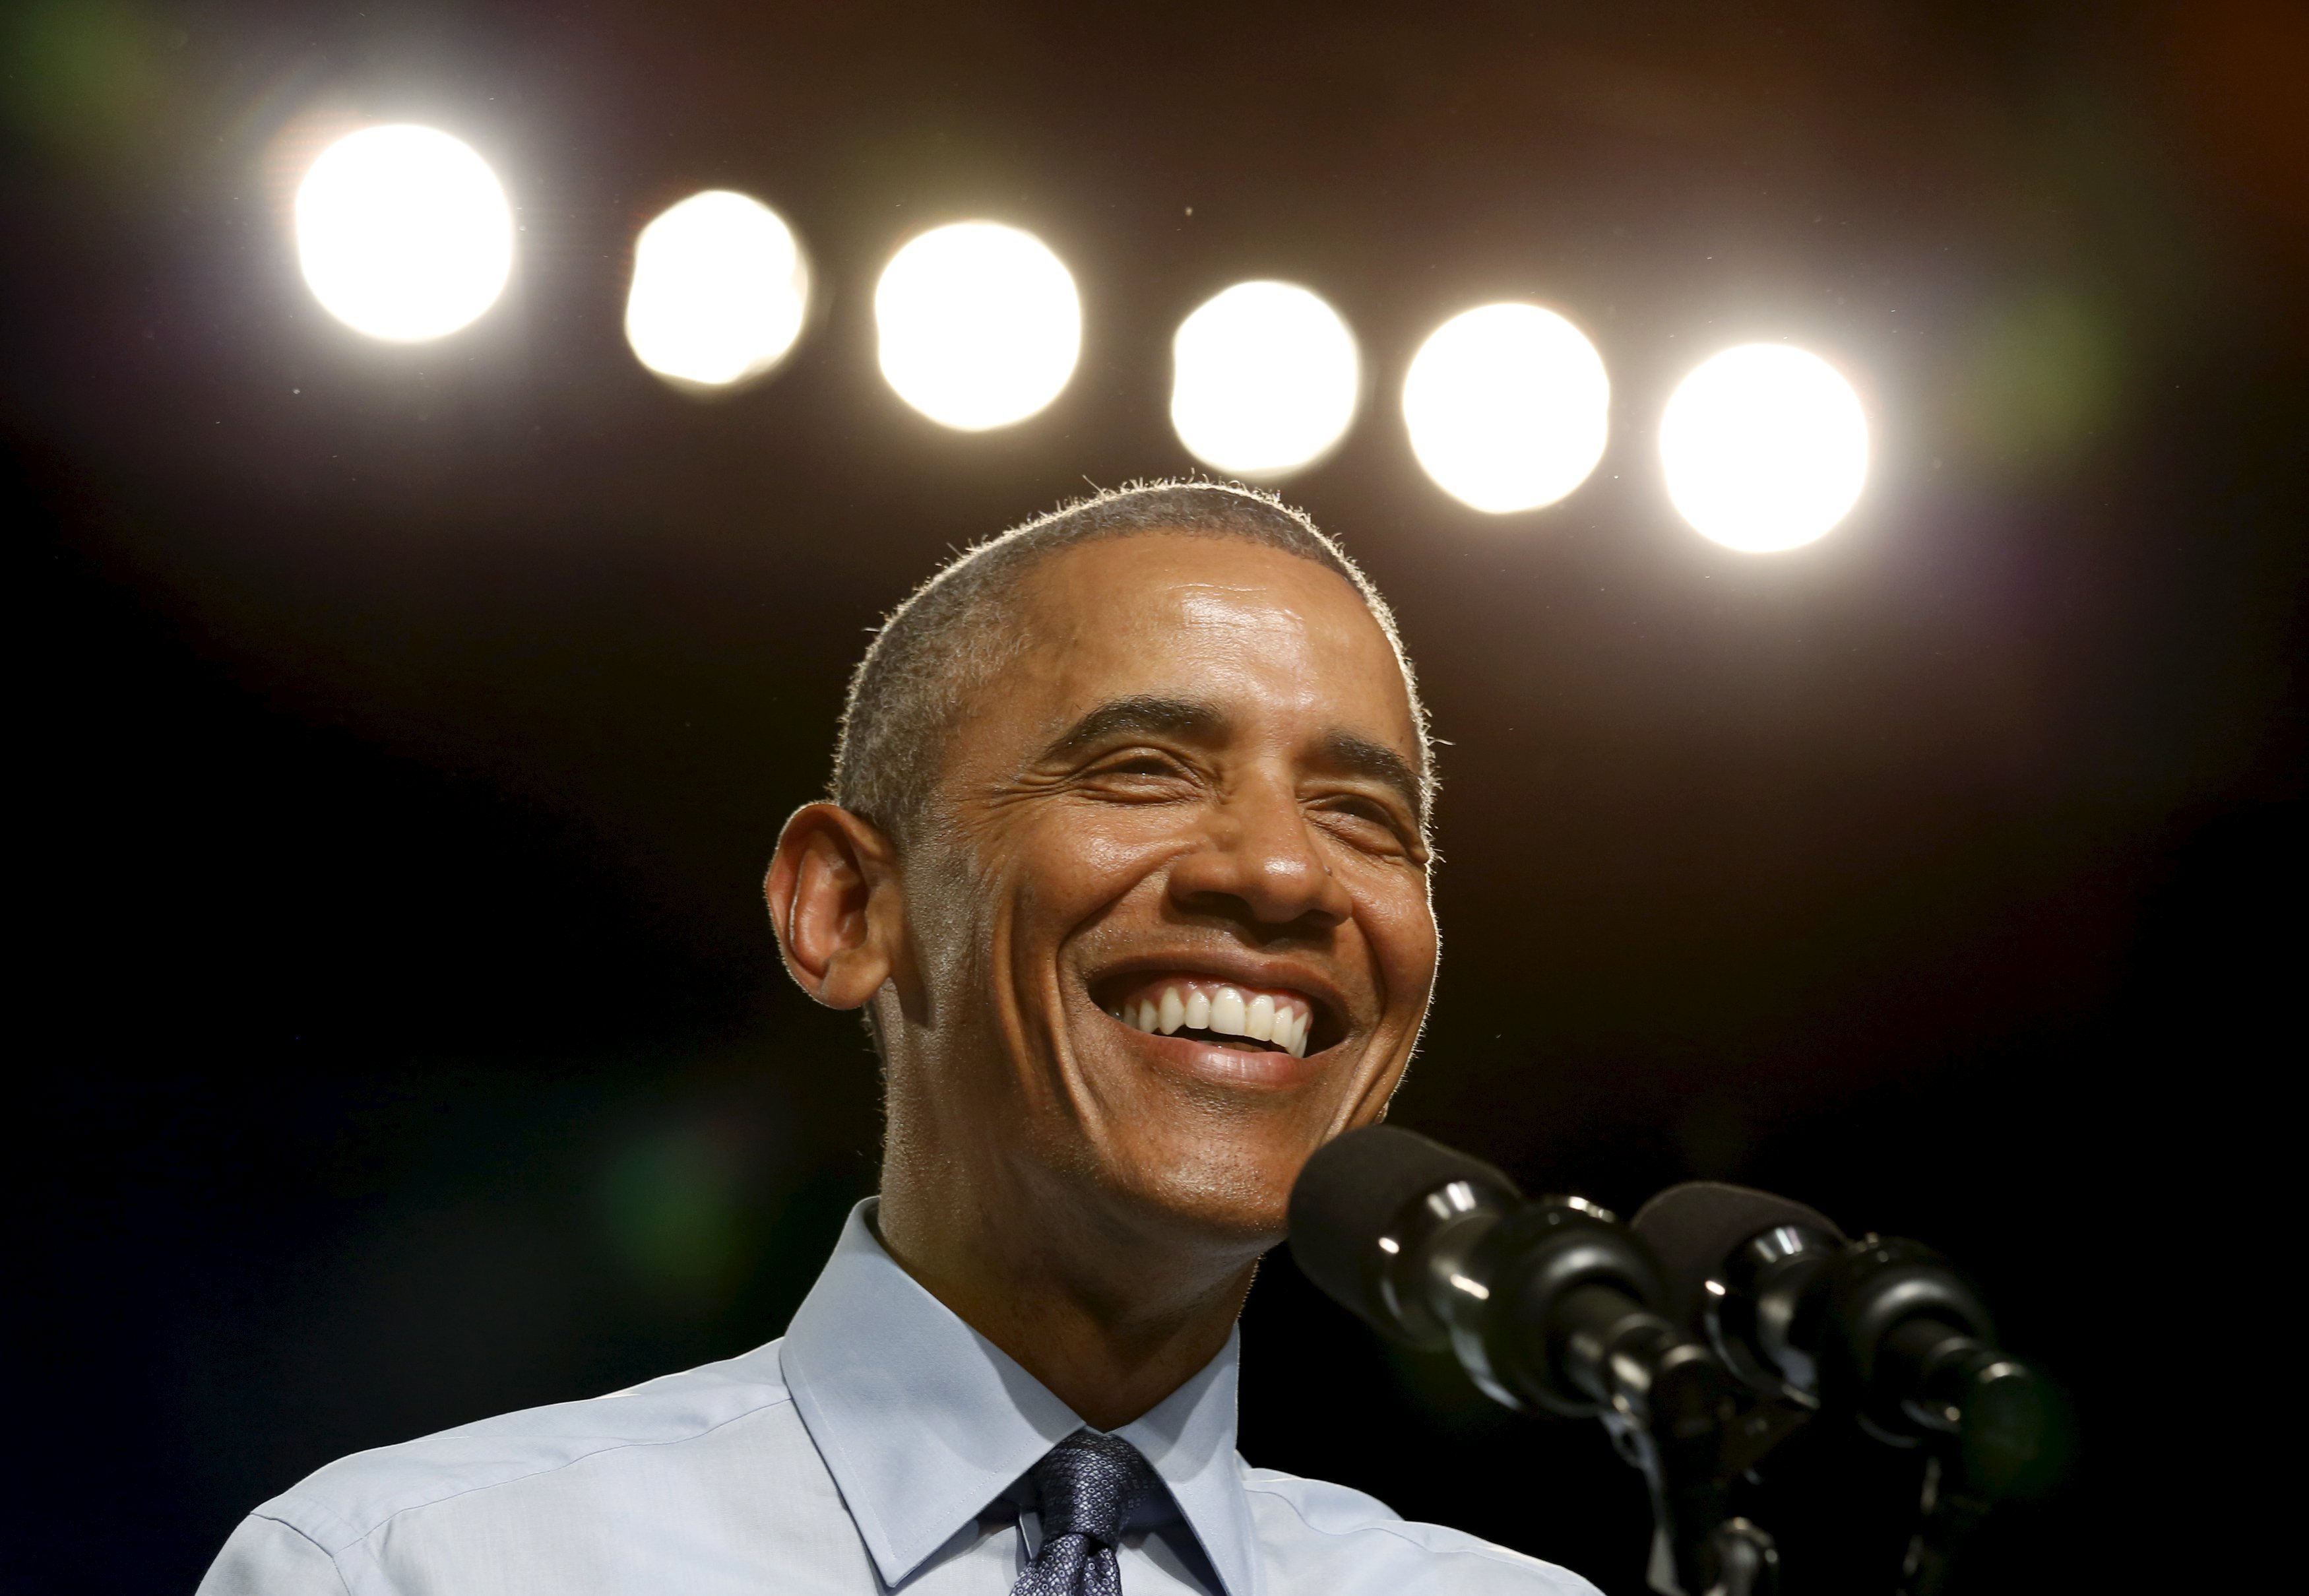 U.S. President Barack Obama smiles while speaking during a visit to Macomb Community College in Warren, Michigan on Sept. 9, 2015.